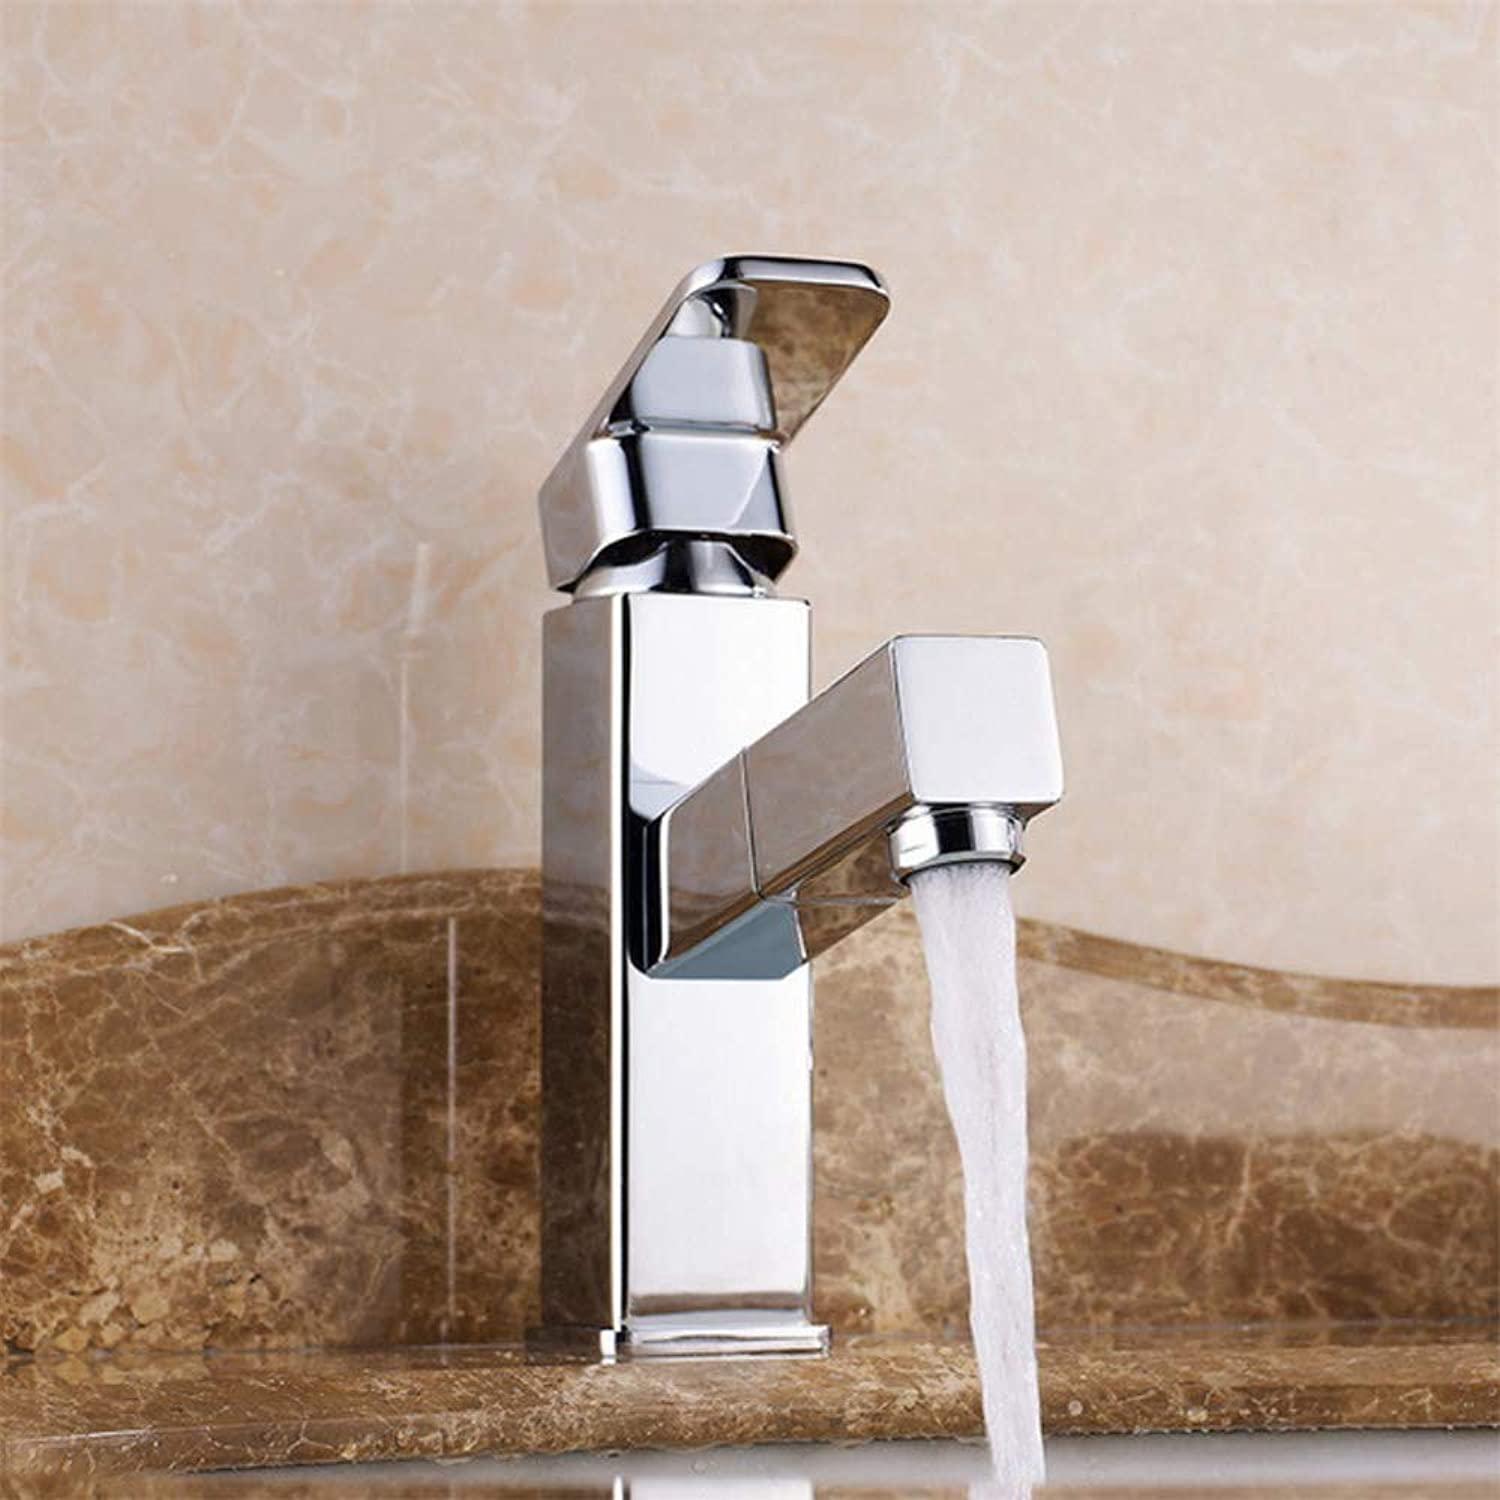 360° redatable Modern Faucetbasin Pull-Out Faucet Single Handle Single Hole Above Counter Basin Washbasin Bathroom Cabinet Wash Head Hot and Cold Water Faucet